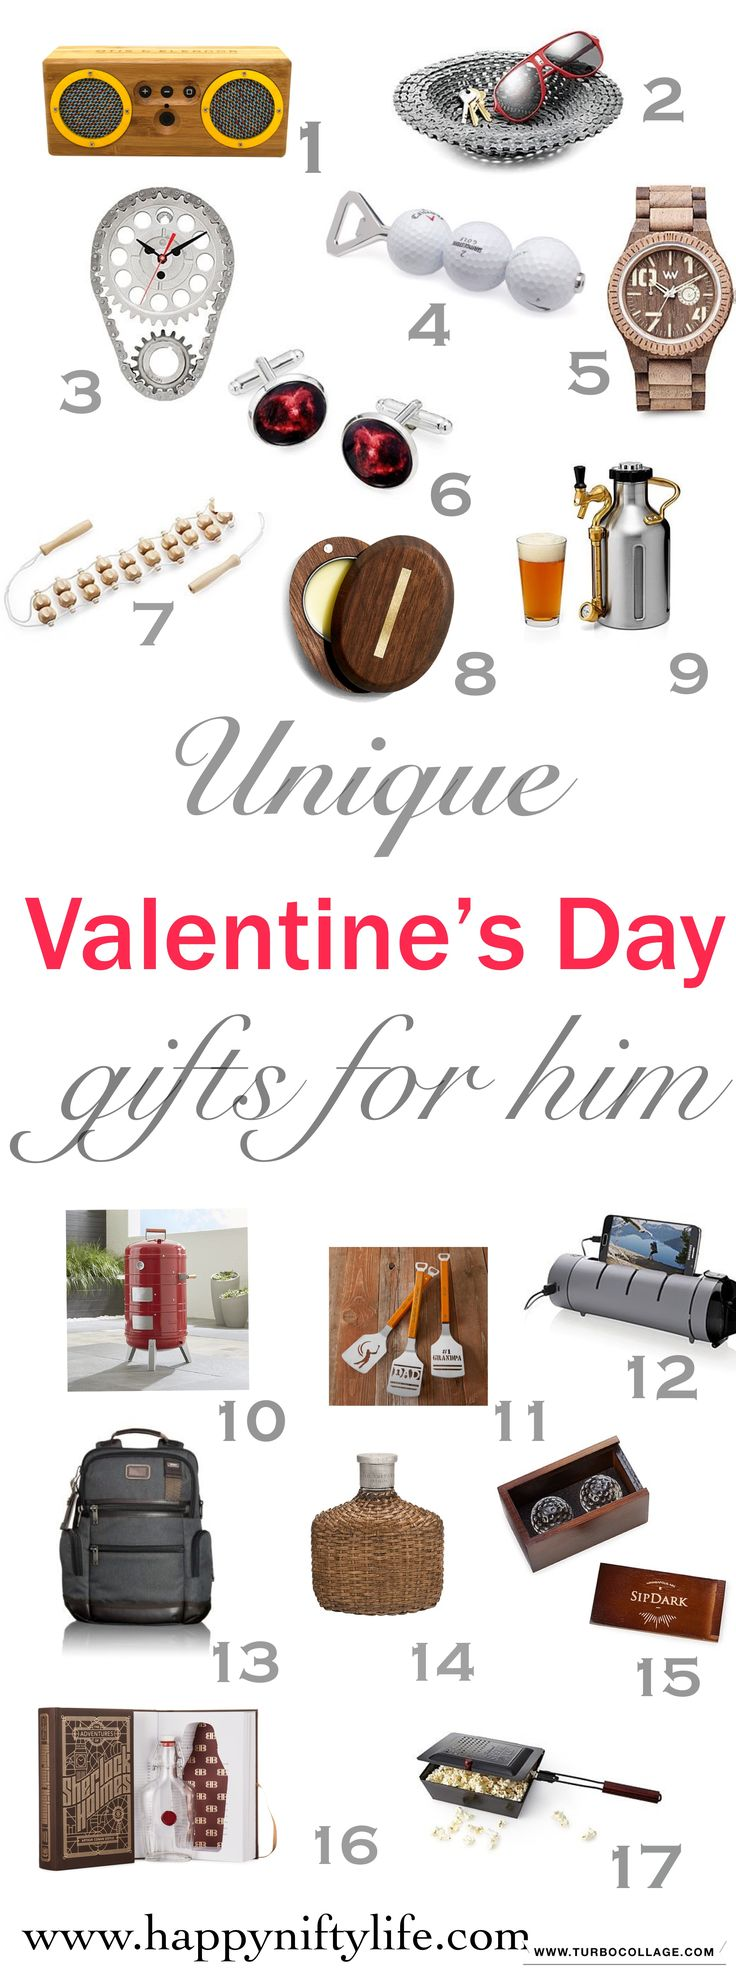 Interesting gift ideas for your husband or boyfriend this Valentine's Day. This gift guide is suitable for all budgets and includes some great ideas for spoiling your man. #valentinesday #giftsforhim #giftideas